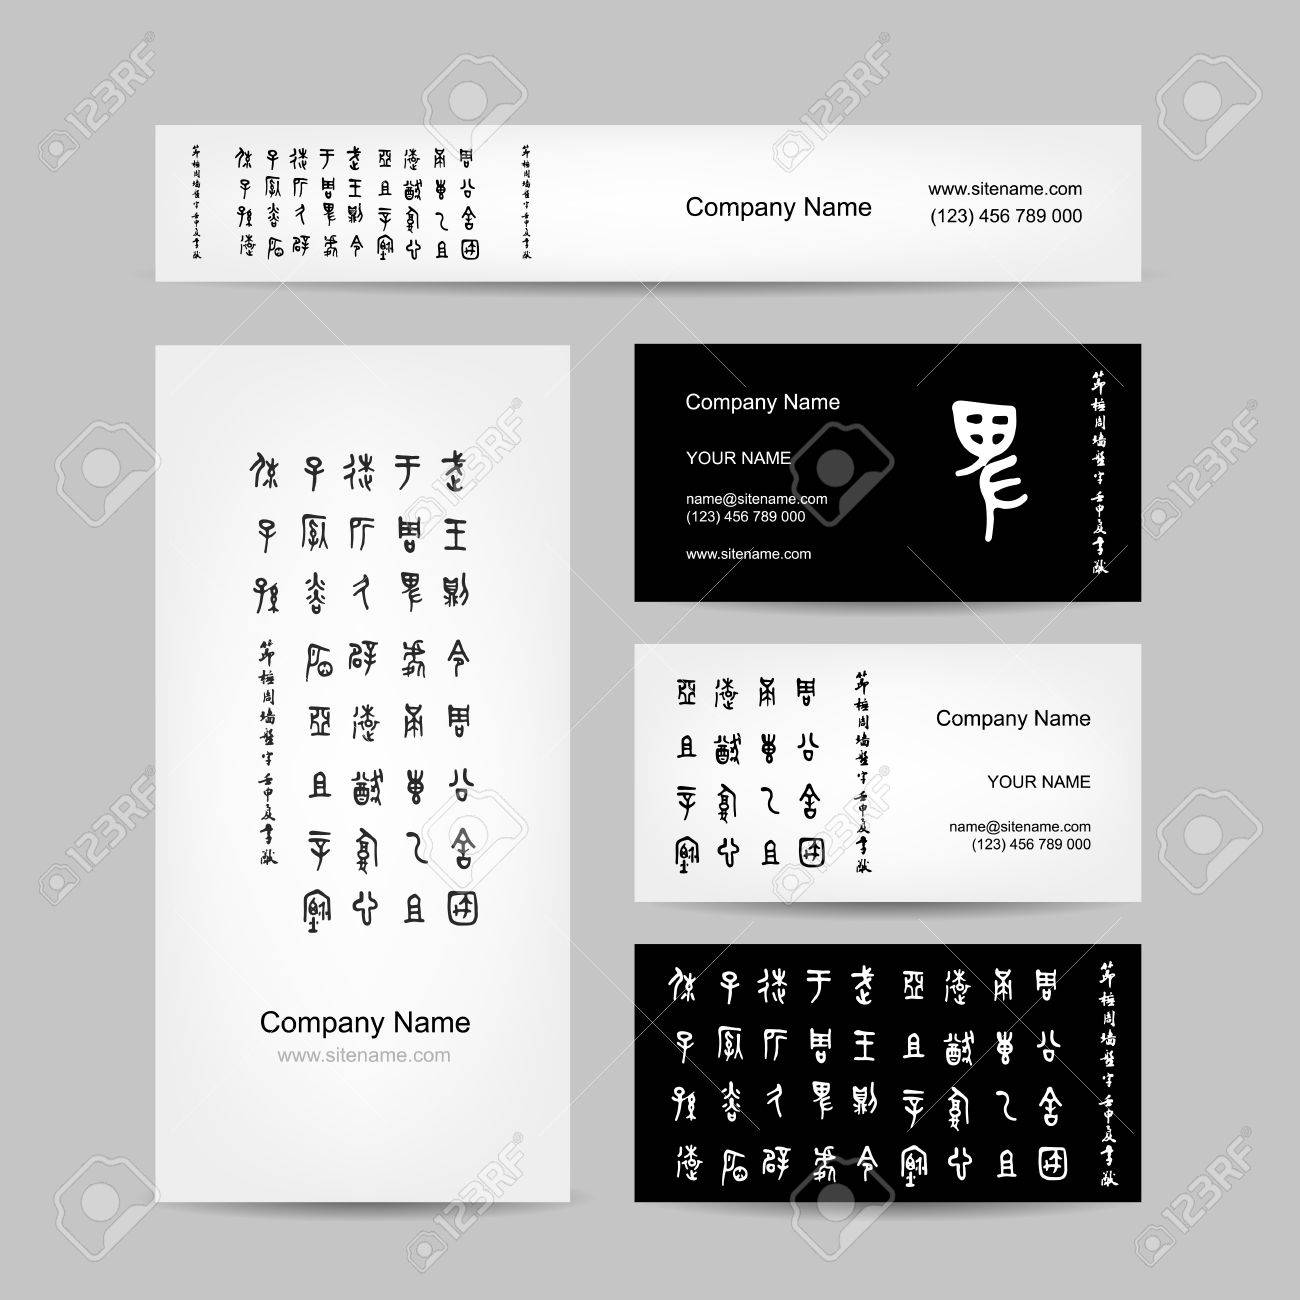 Business cards design chinese calligraphy royalty free cliparts business cards design chinese calligraphy stock vector 39381213 colourmoves